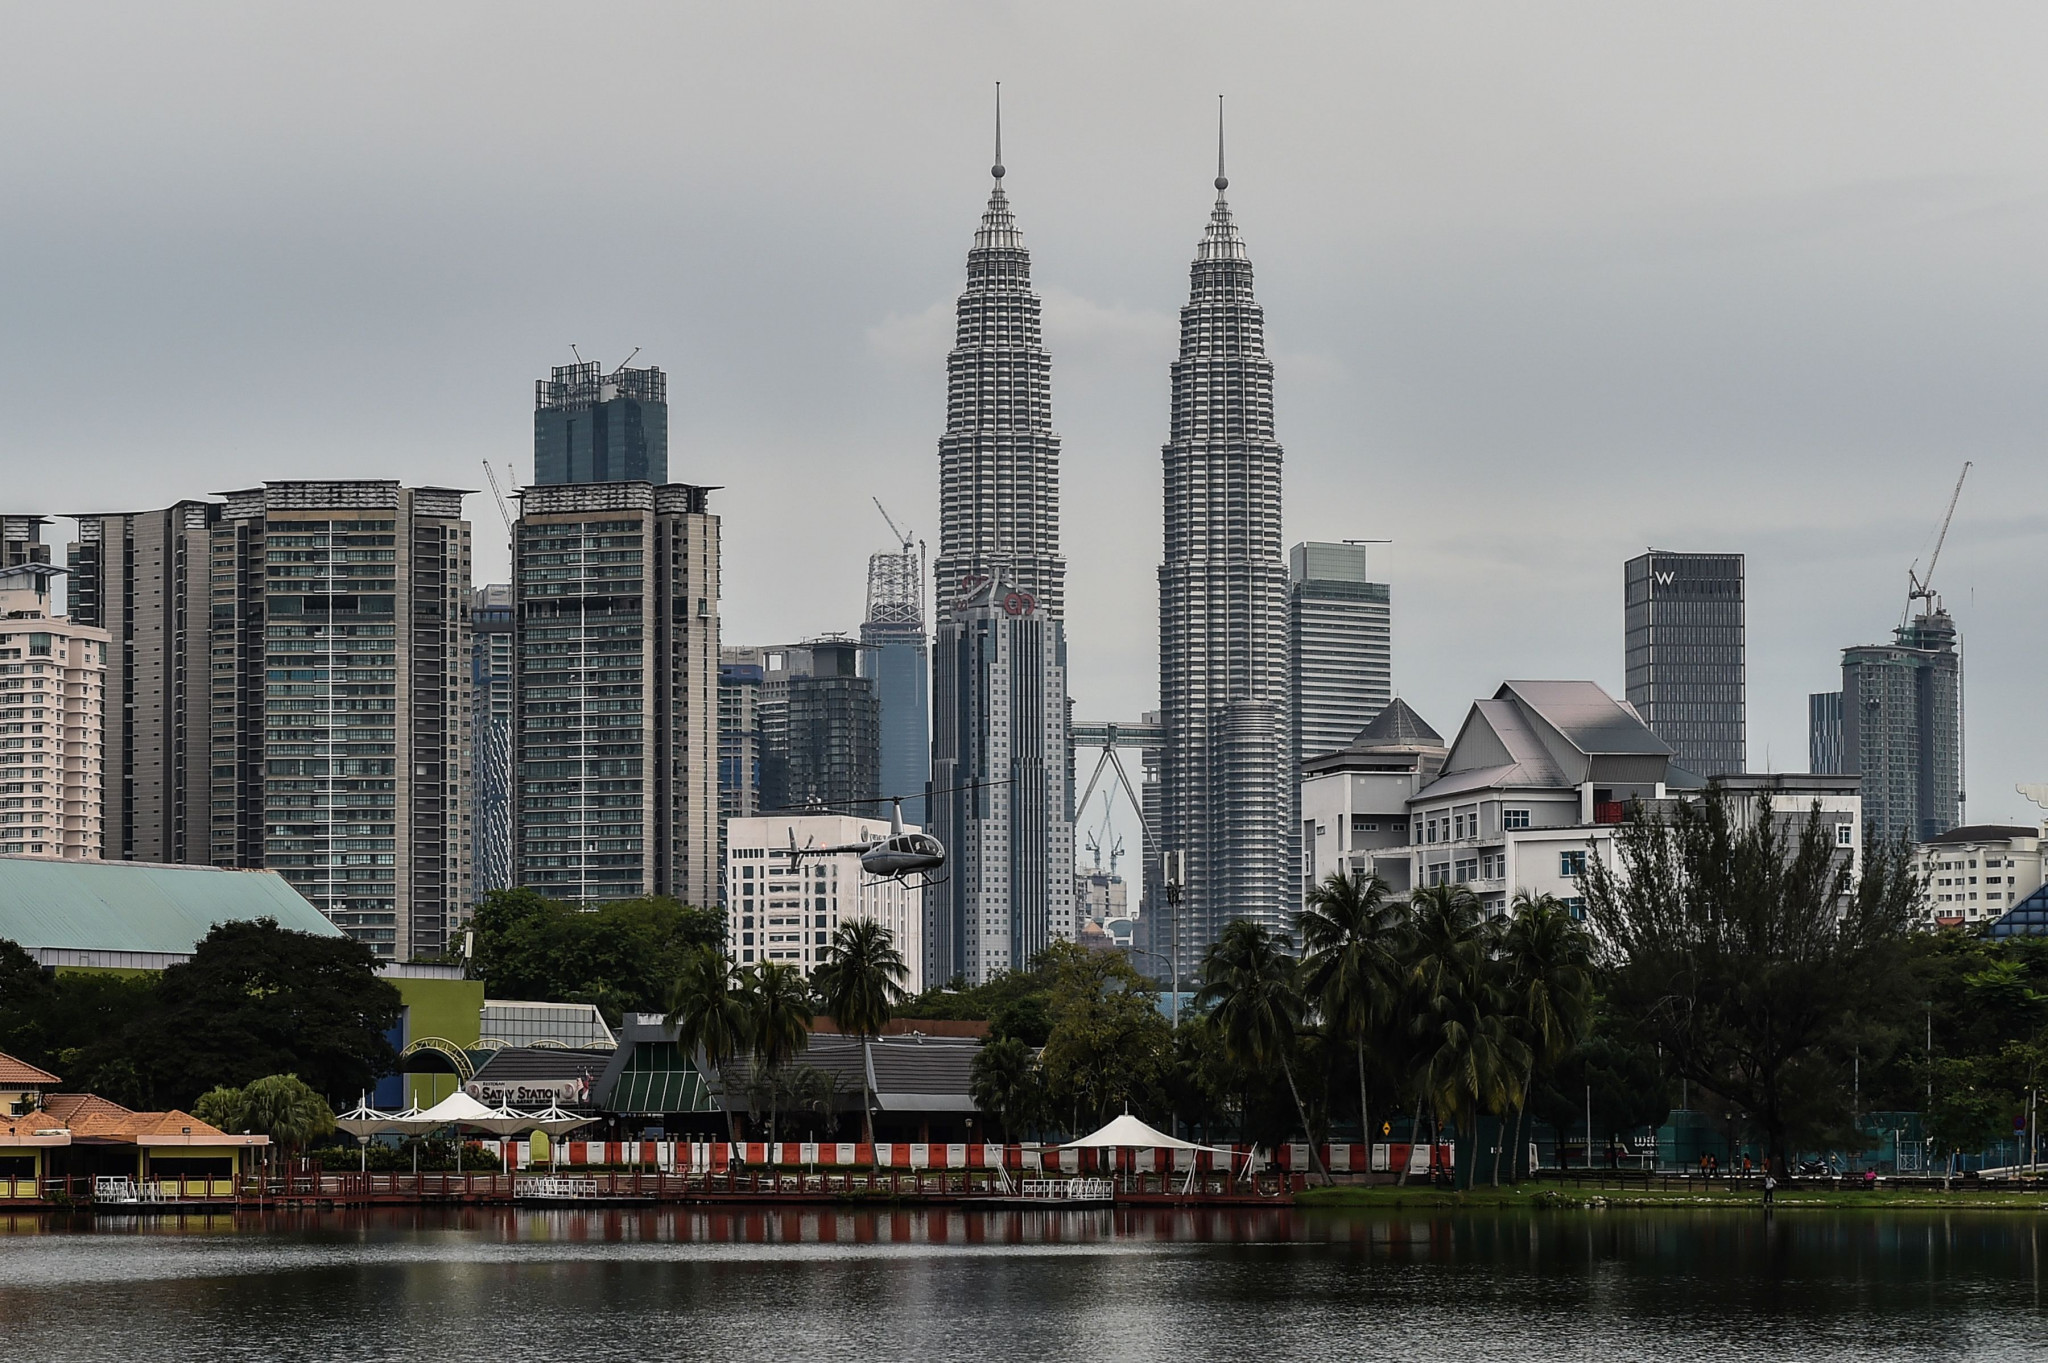 Malaysia's capital Kuala Lumpur played host to the AUSF General Assembly ©Getty Images